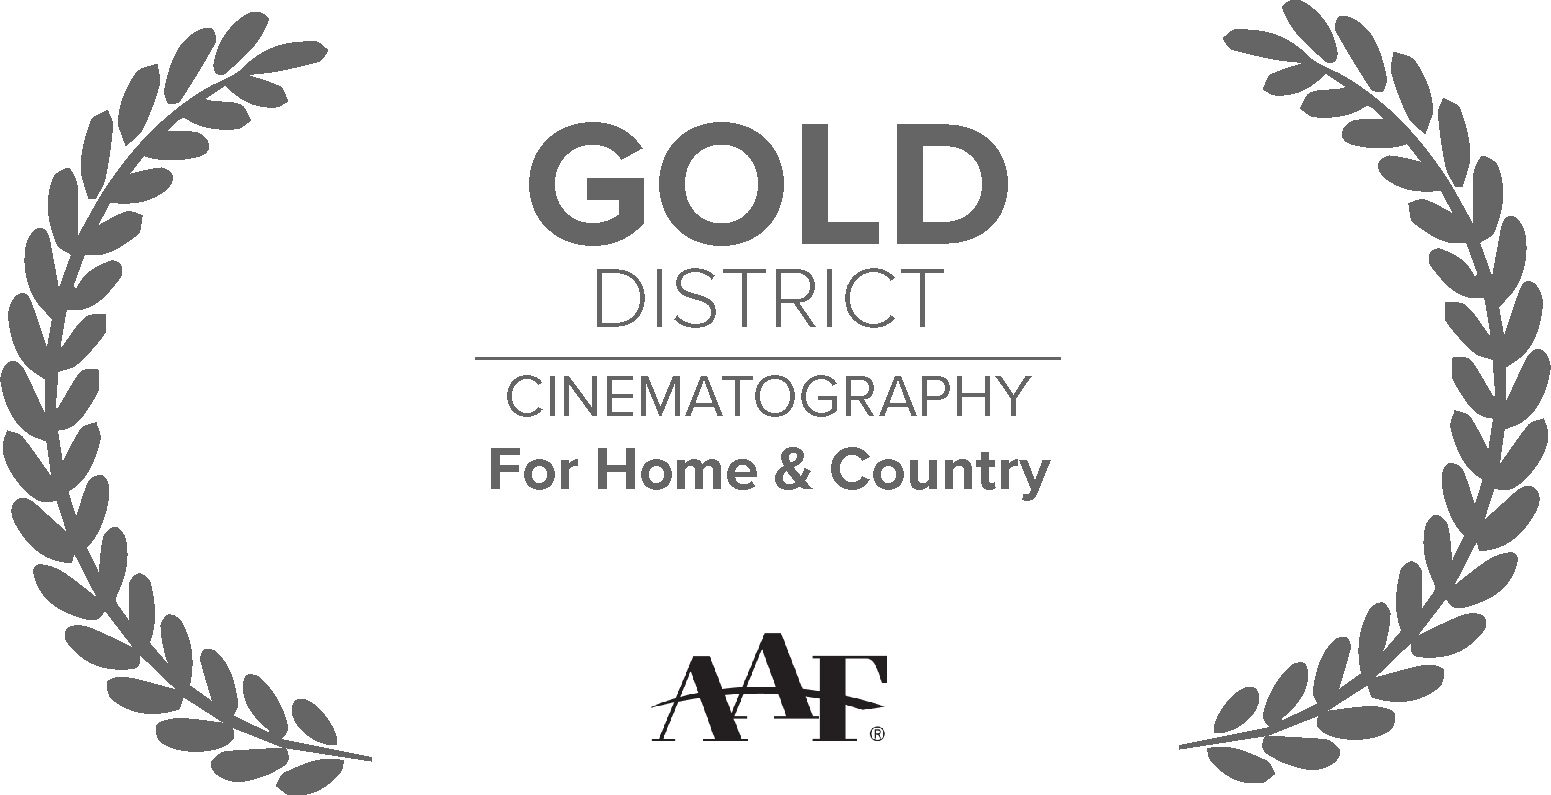 Gold_District_Cinematpgraphy@3x.png